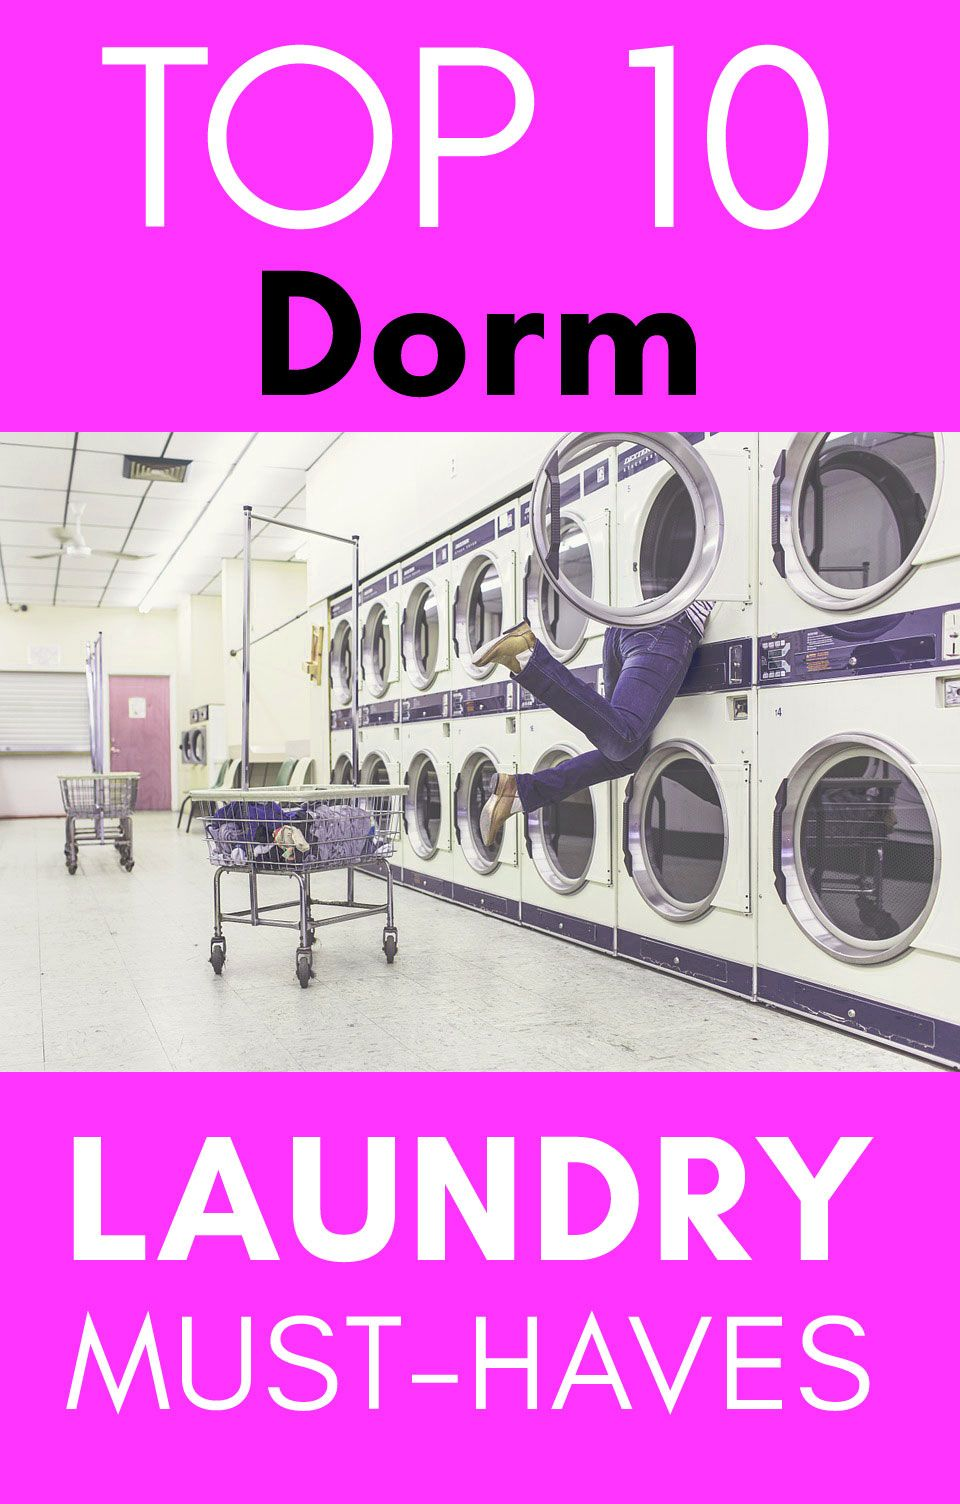 Dorm Laundry Top 10 List Of Must Have Items Videos Hacks Limpieza